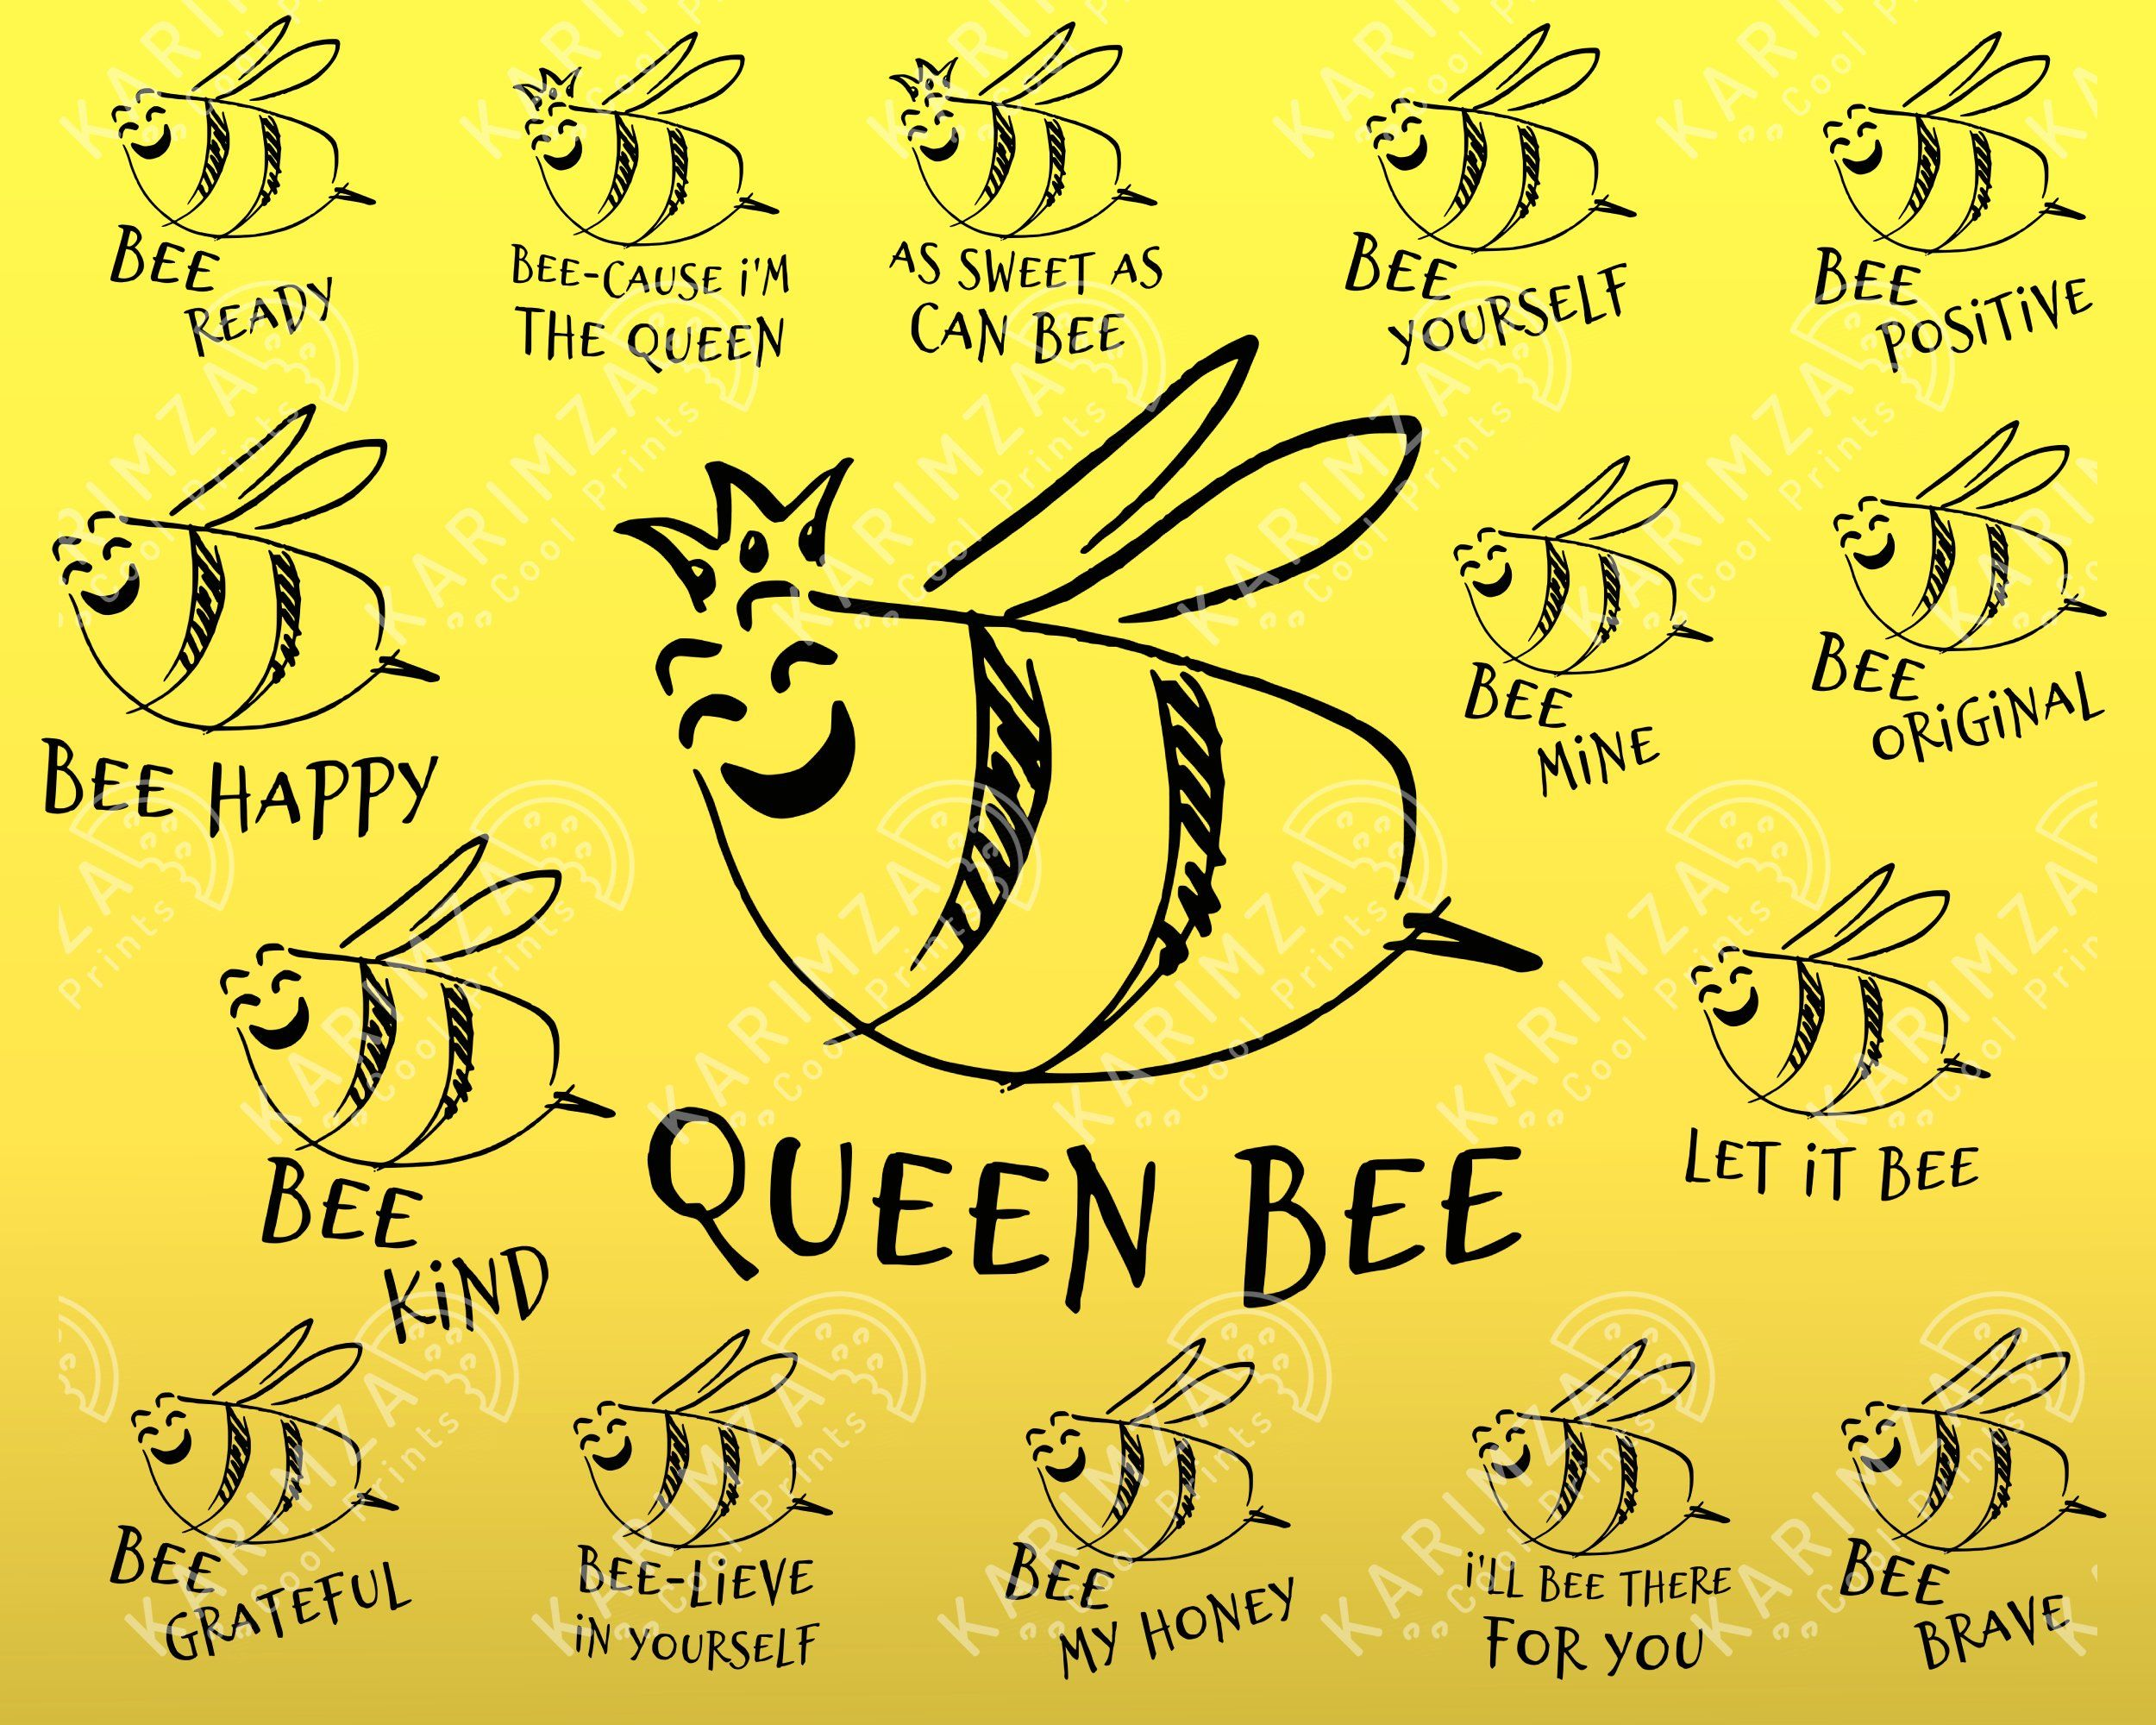 Bee Quotes Svg Bundle Queen Bee Let It Bee Bee Kind Happy In 2021 Bee Quotes Cute Funny Quotes Svg Quotes